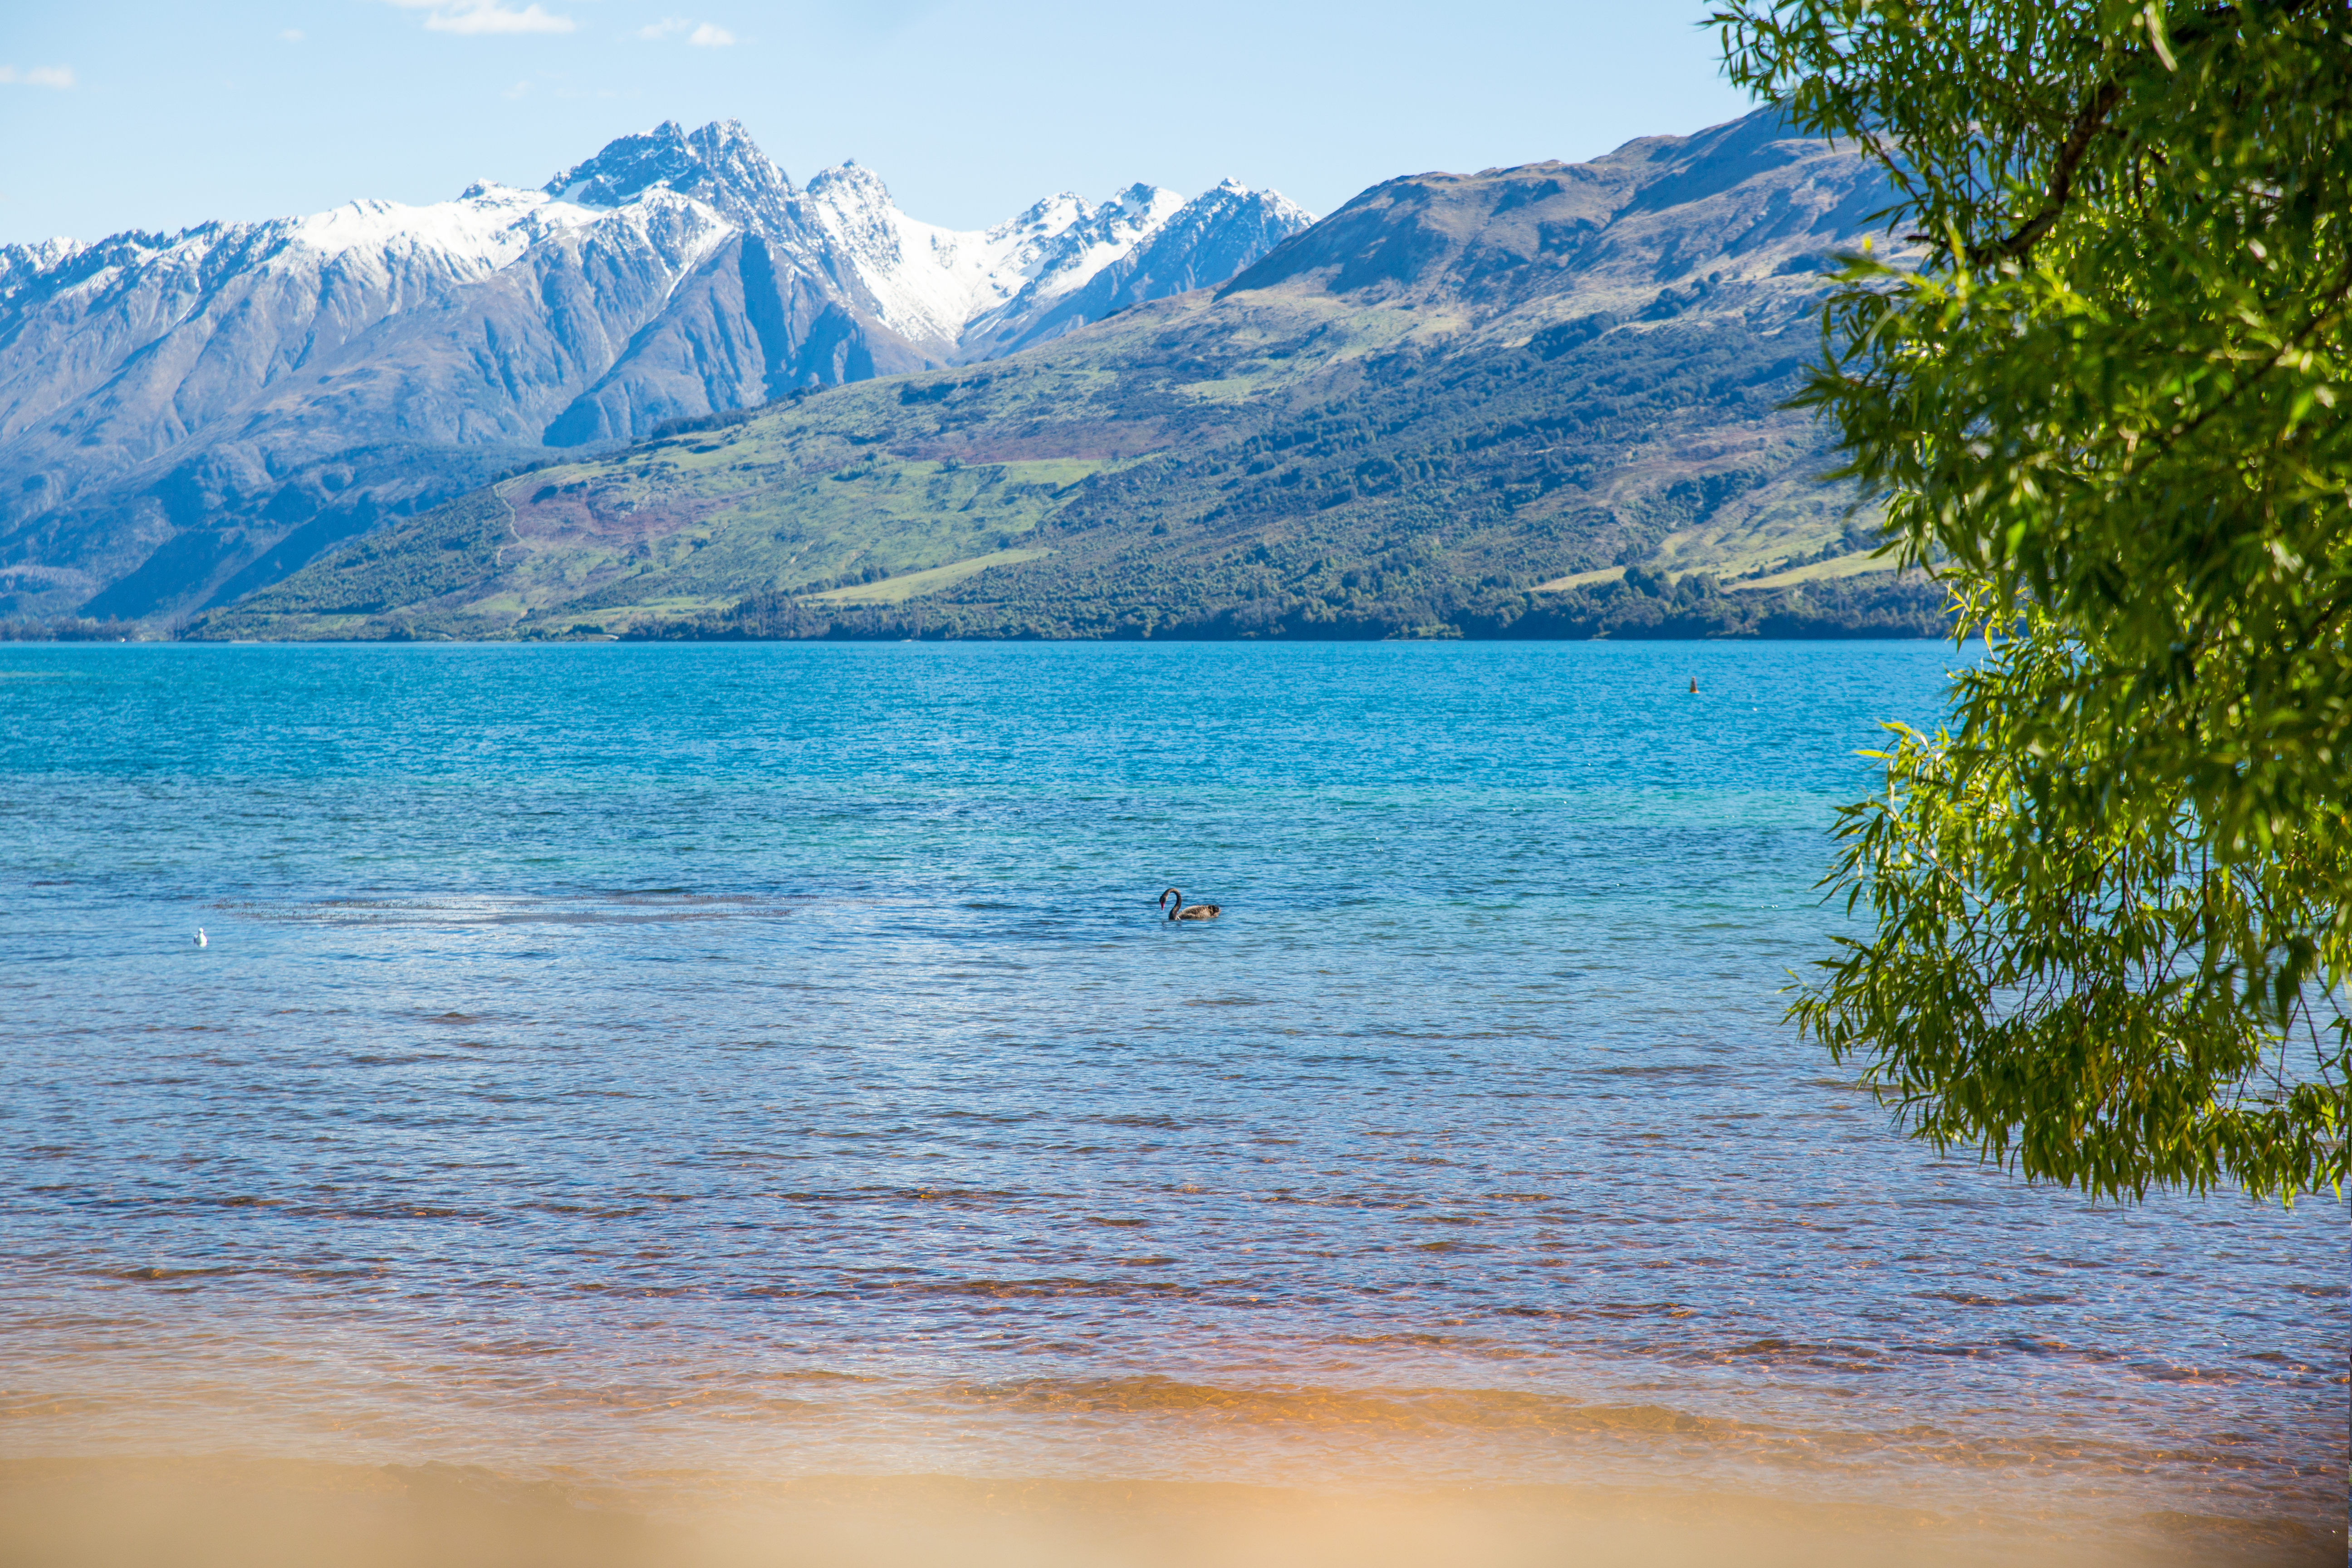 Landscape Photo of Body of Water With Mountain As Background